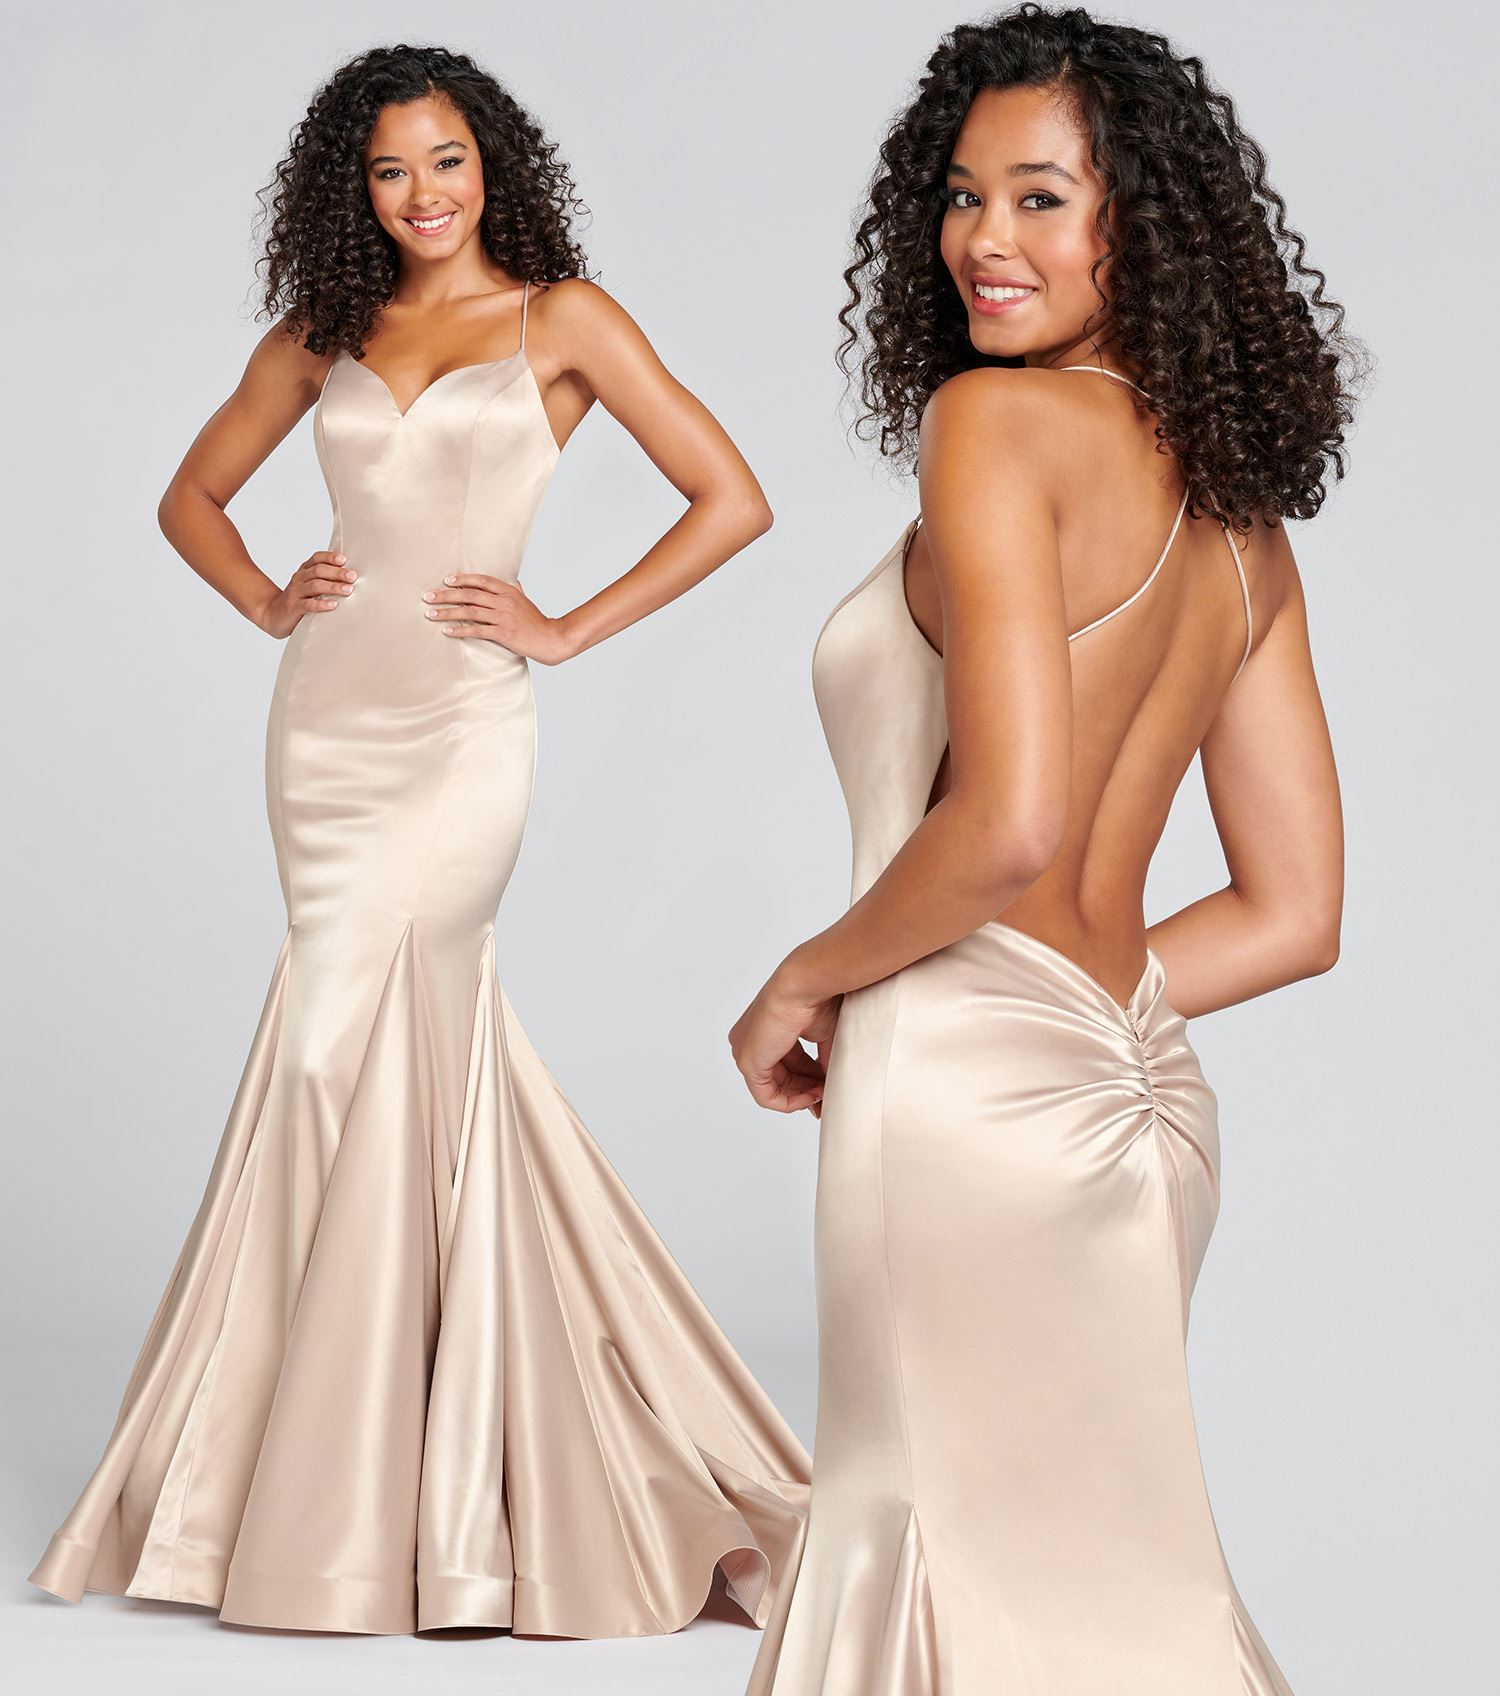 Bruntte model wearing champagne prom dress by Colette for Mon Cheri